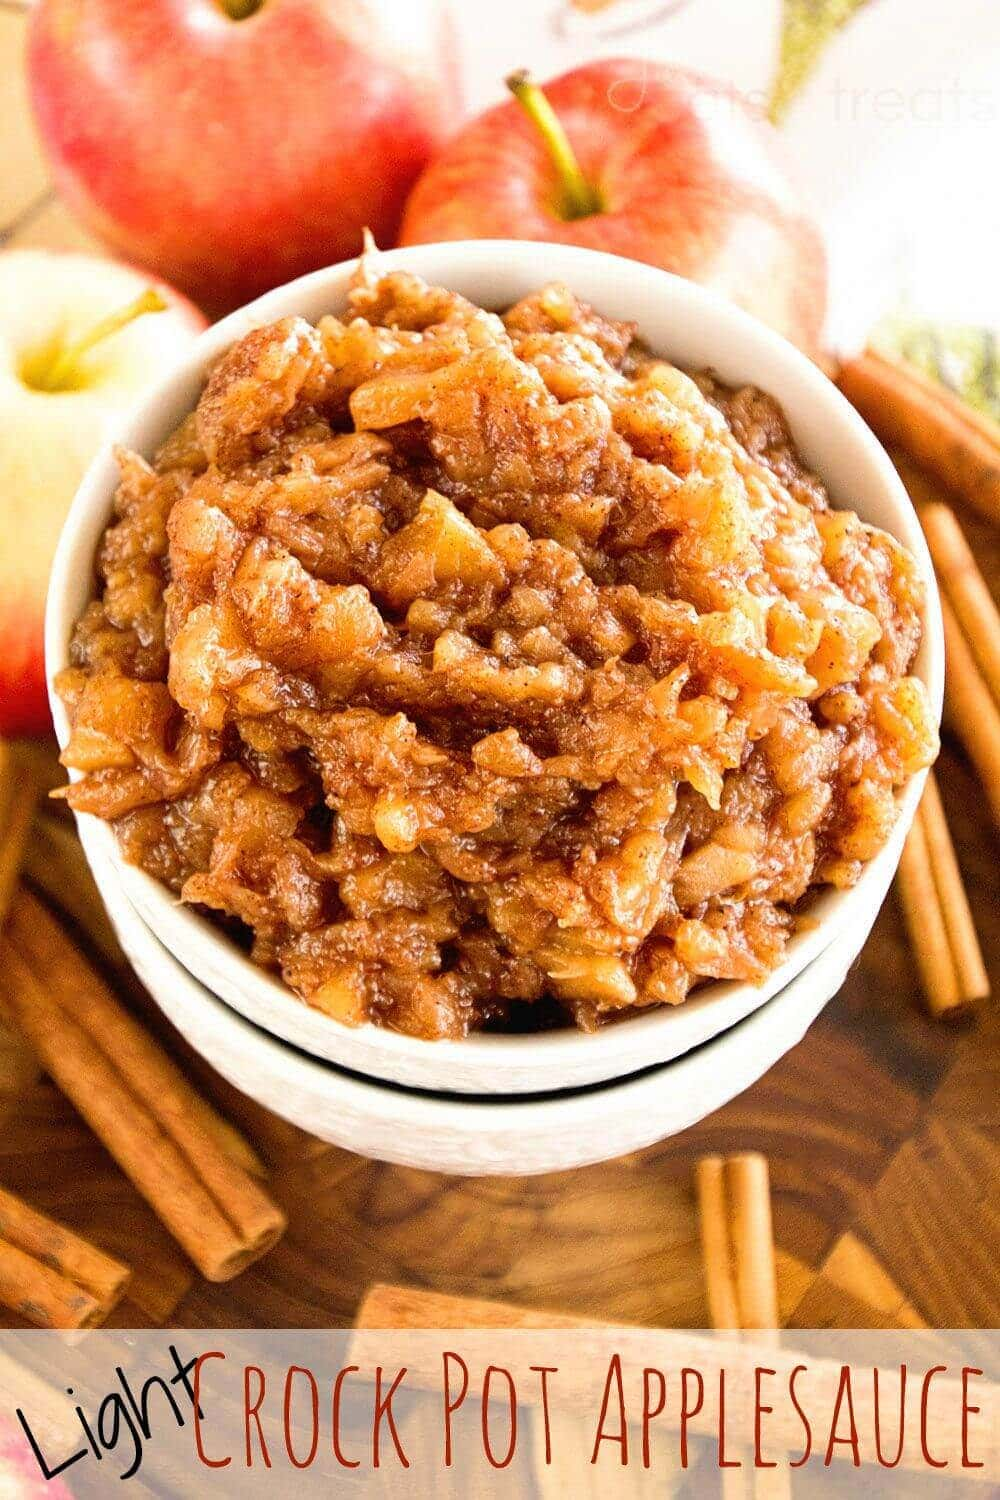 Light Crock Pot Applesauce Recipe ~ Delicious, Easy Applesauce that is slow cooked! Loaded with all the flavors of fall!